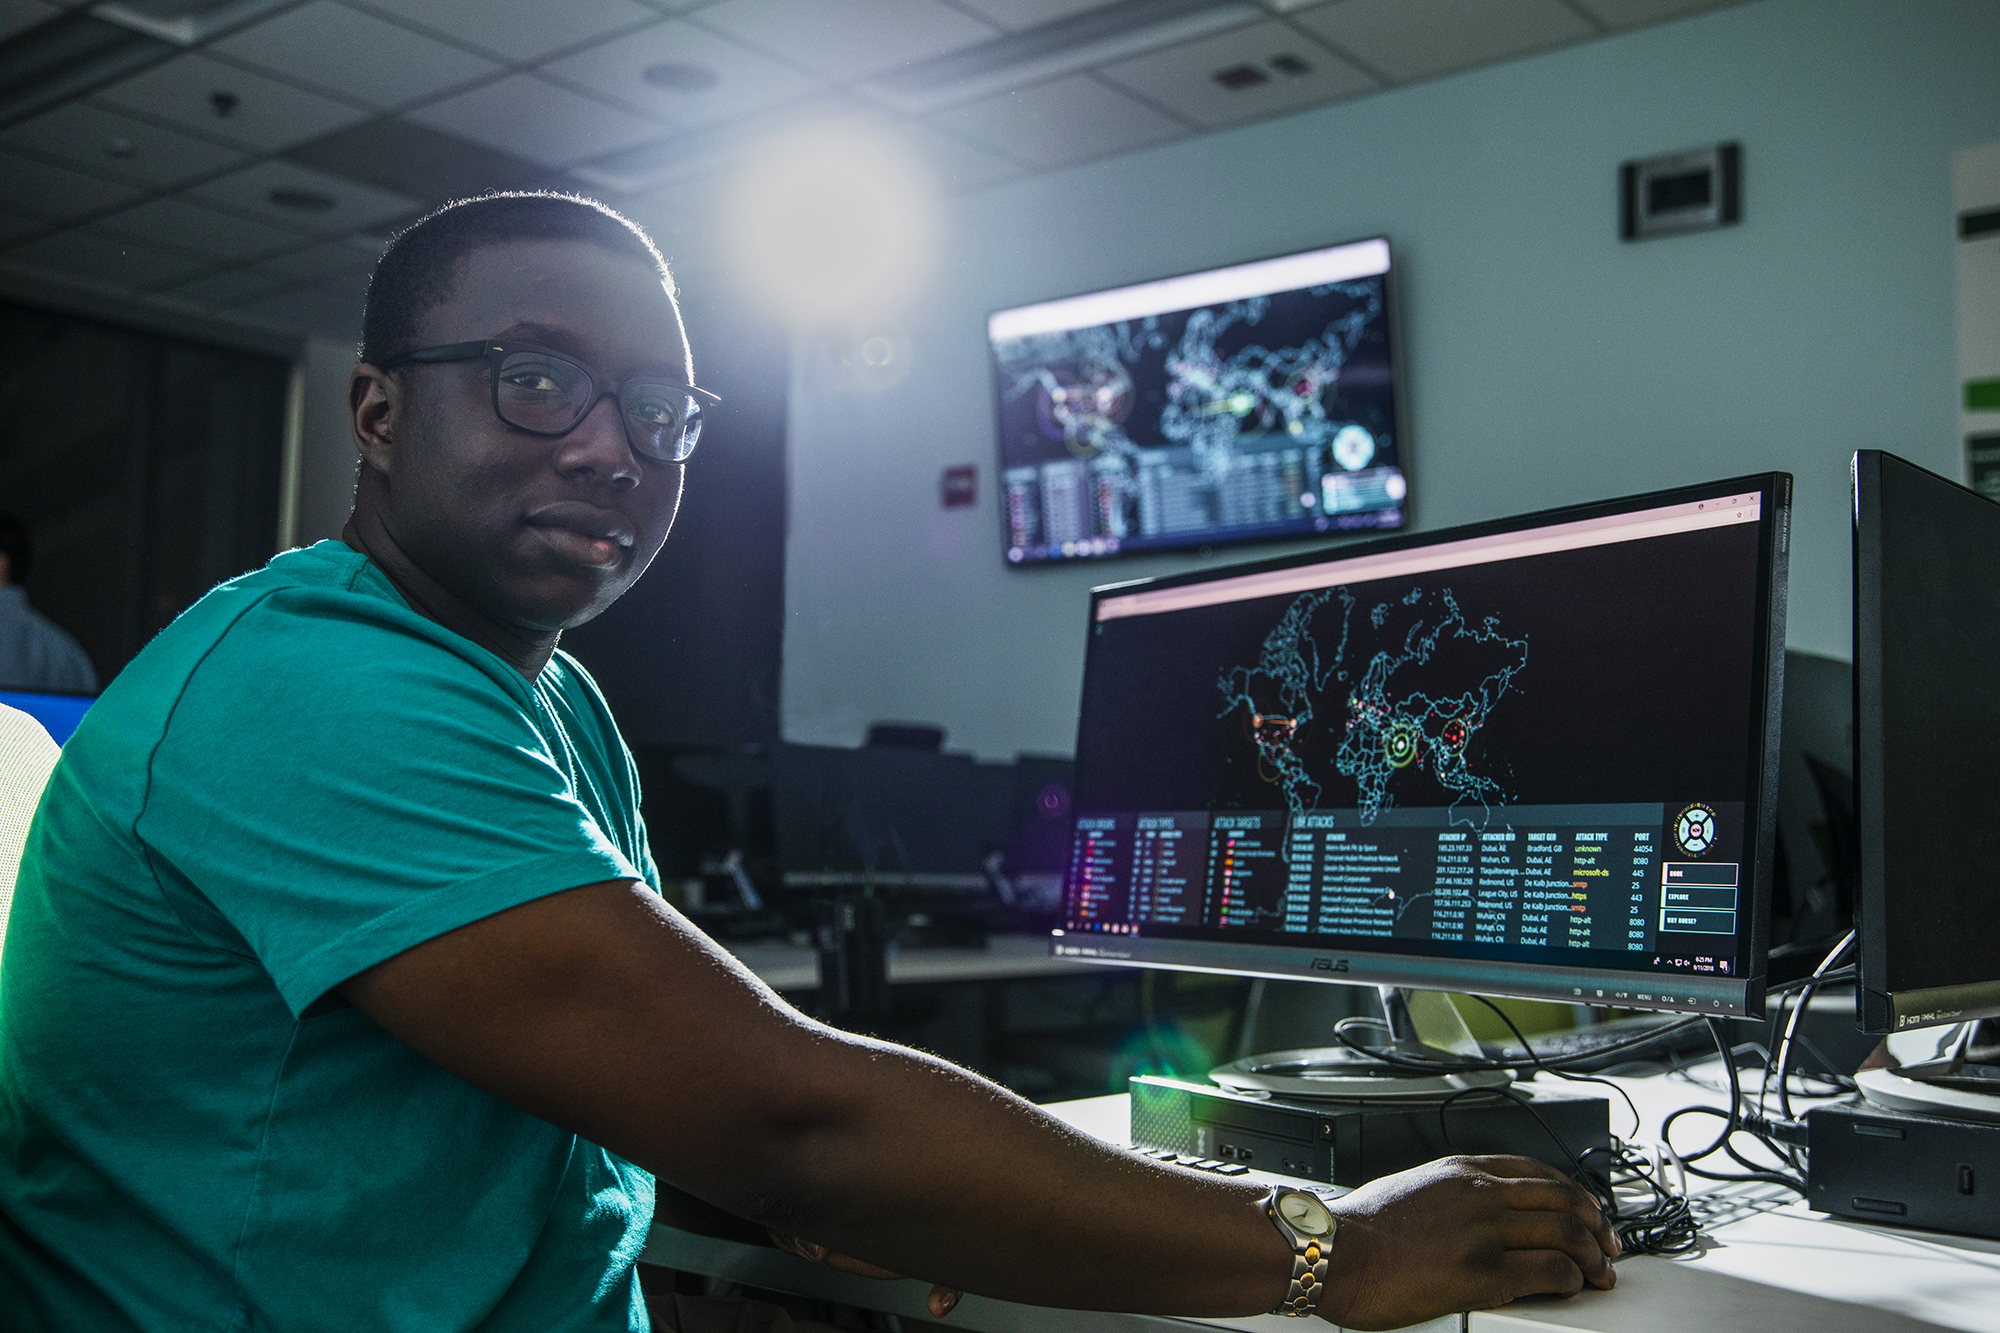 UWF student Basil Kuloba in the Cybersecurity Battle Lab in the Science and Engineering Building, Building 4.